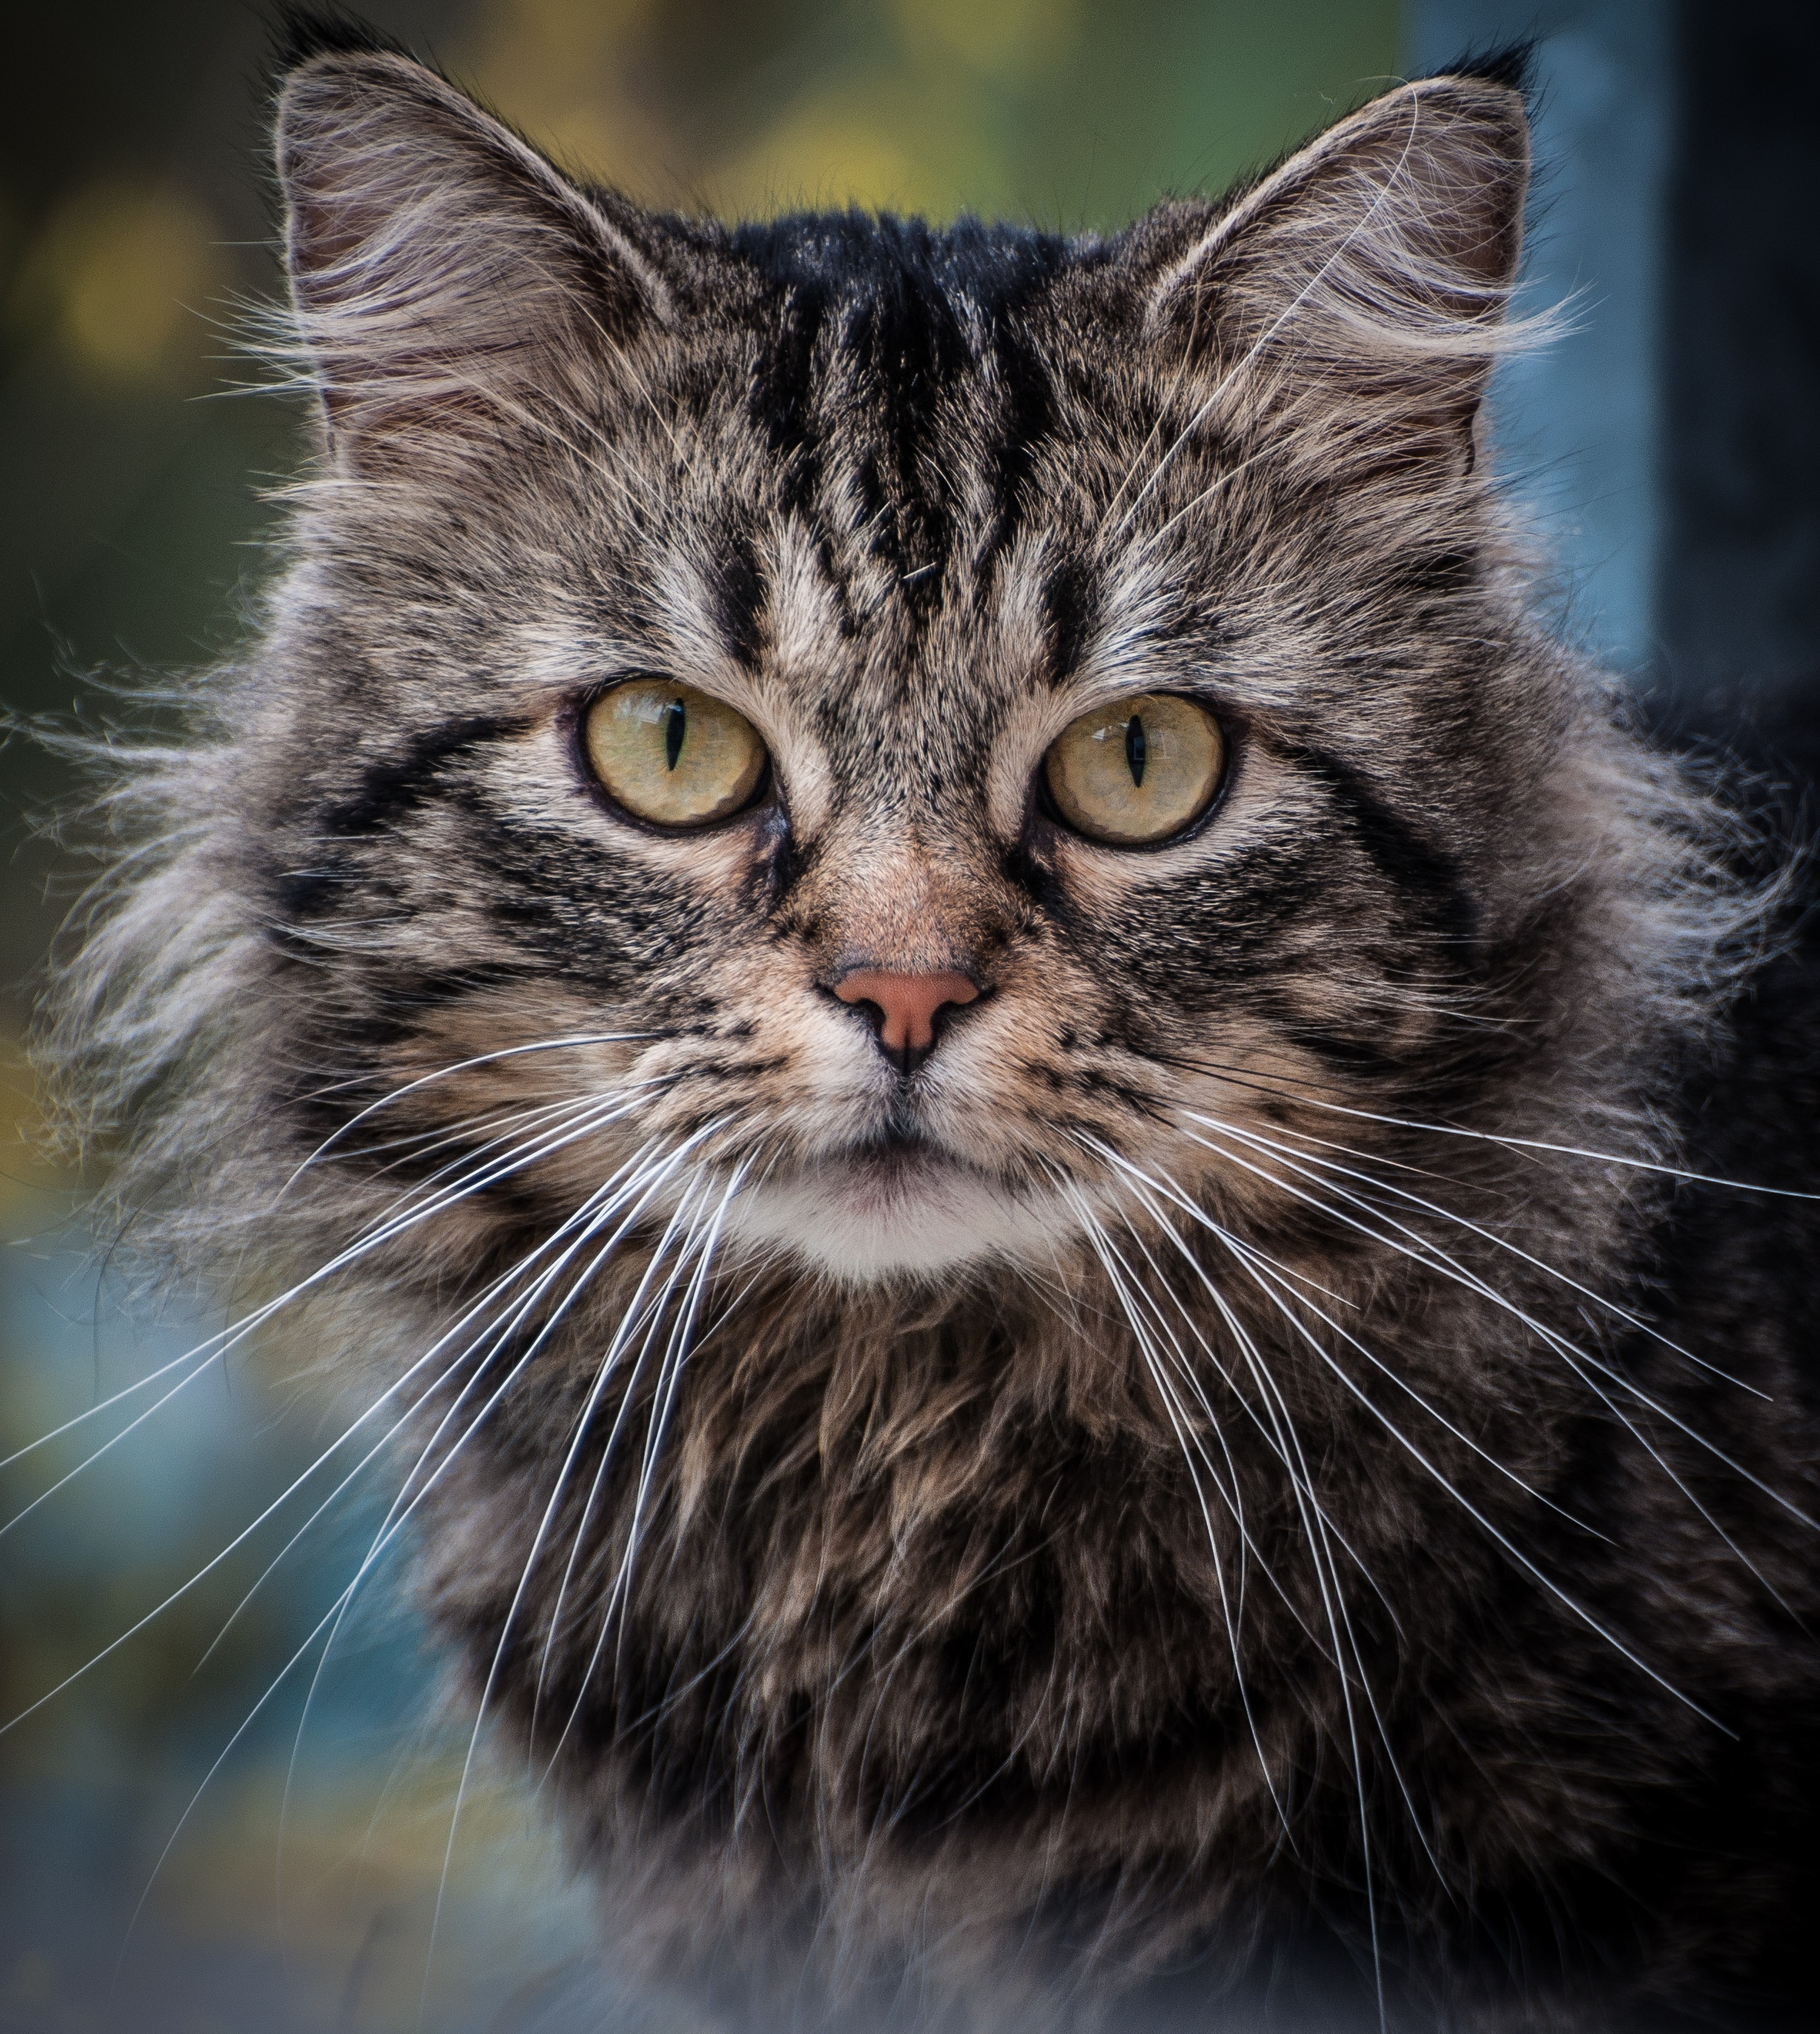 Cute Wallpapers For Iphone X Tabby Cat 183 Free Stock Photo